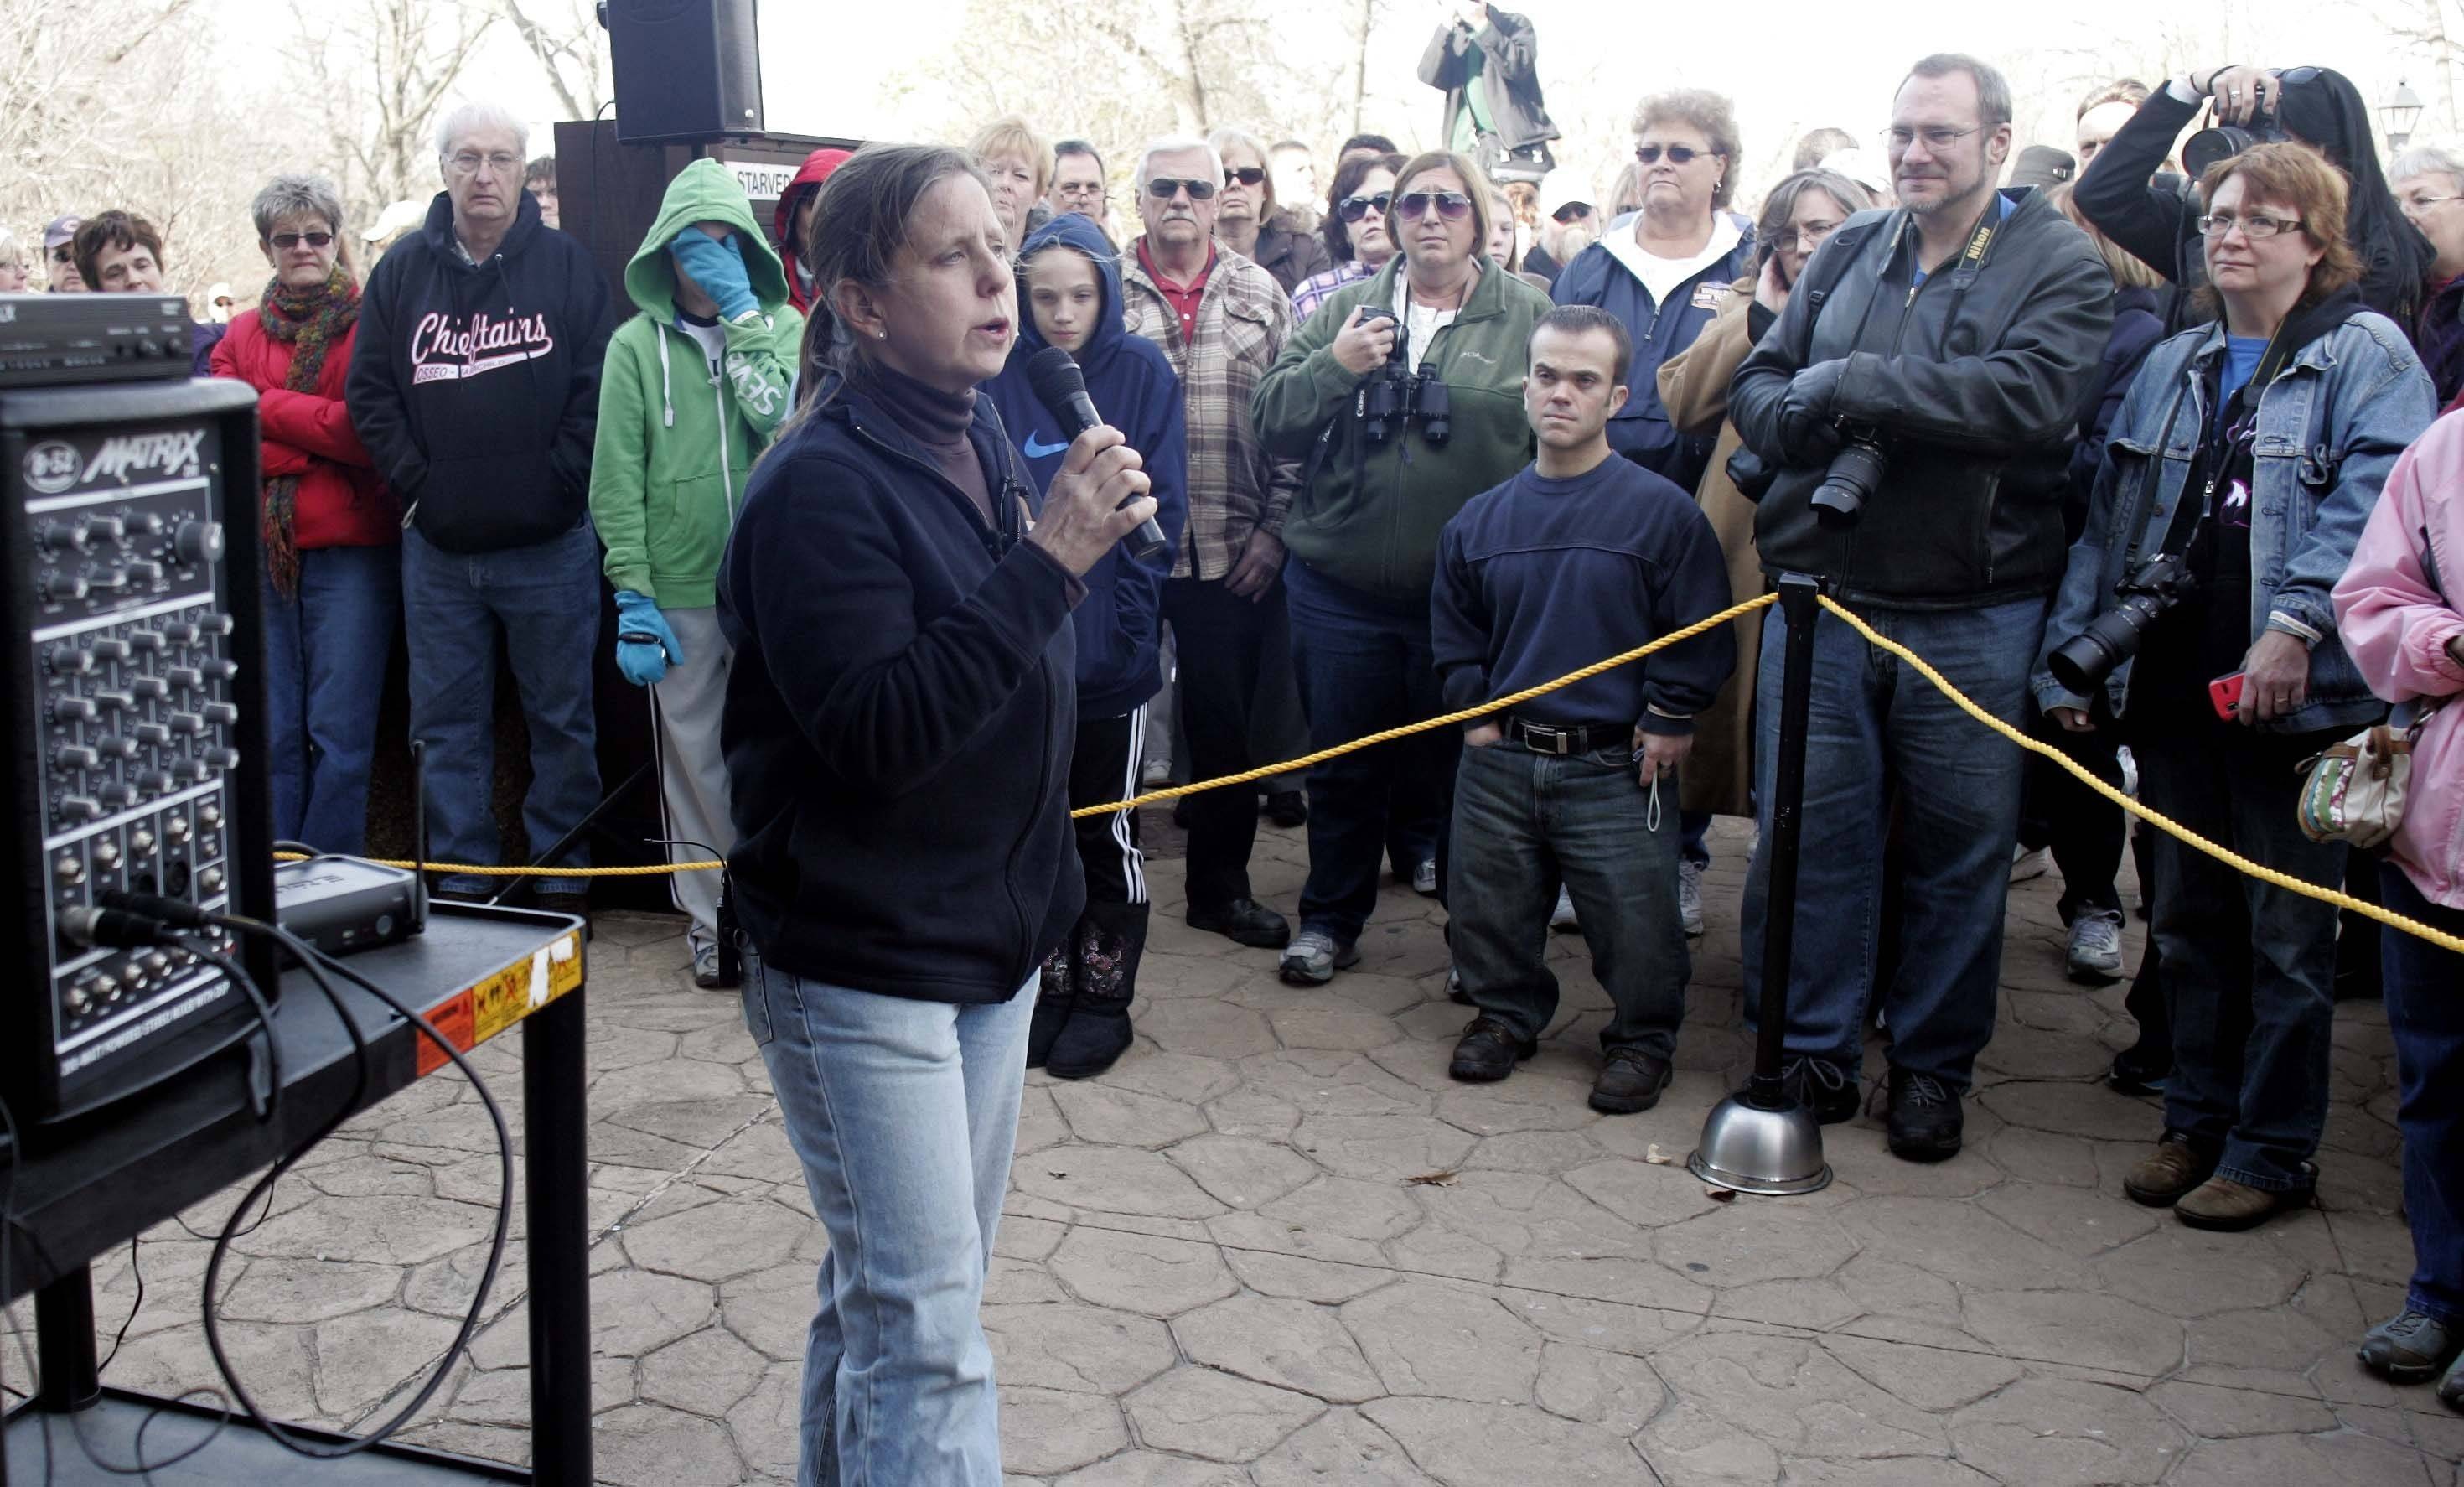 Dawn Keller, founder and director of Flint Creek Wildlife Rehabilitation, talks to the crowd about the two eagles before releasing them Saturday, November 12, 2011 at Starved Rock State Park Utica. The birds were rescued from a fallen nest at Mooseheart.